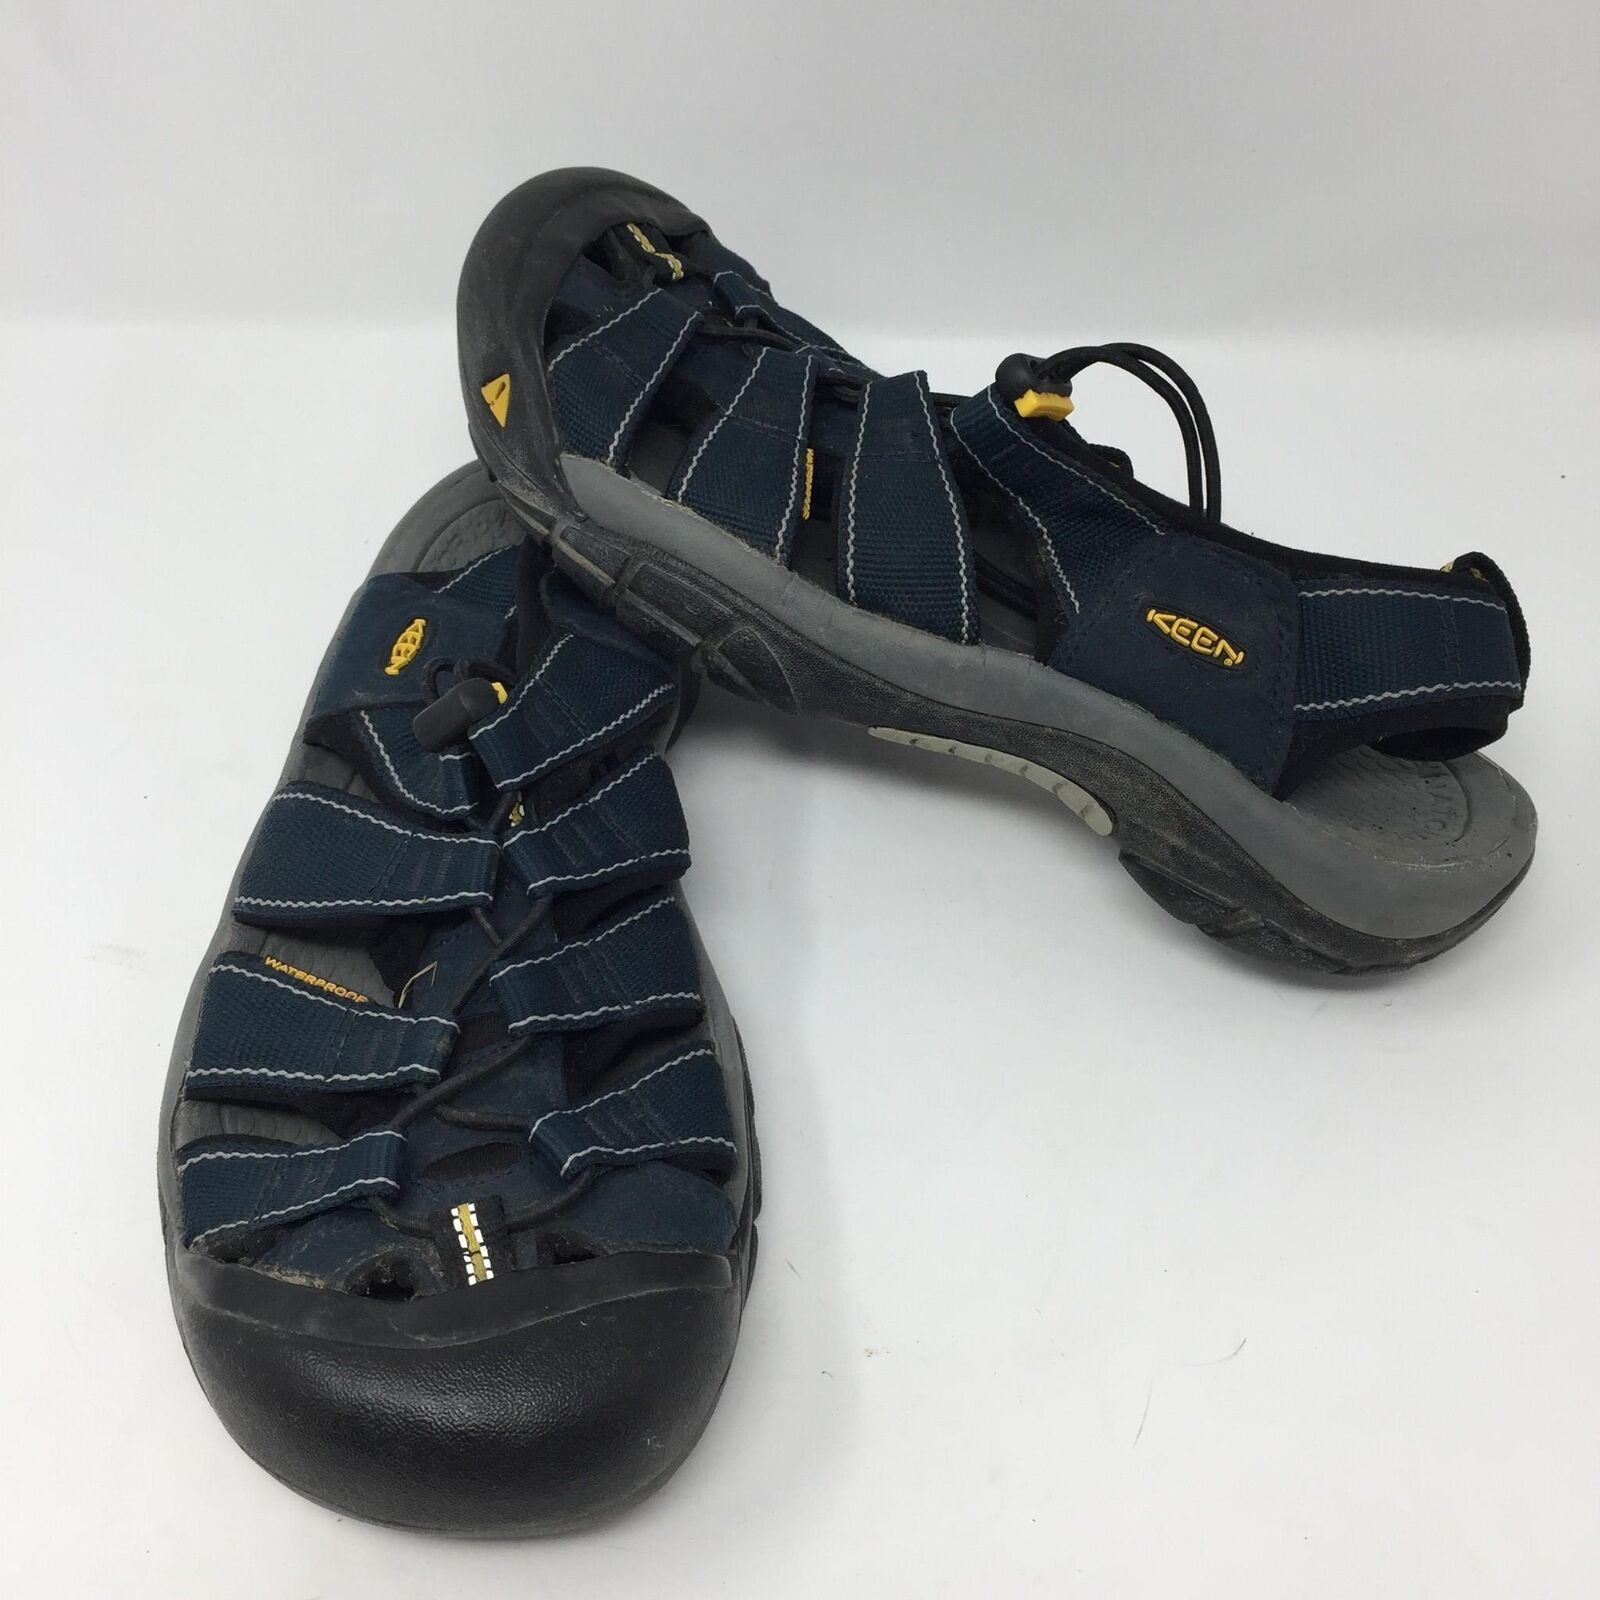 Keen Hiking Waterproof bluee Sandals Sz 9 Footbed Outdoor Trek Hike Trail